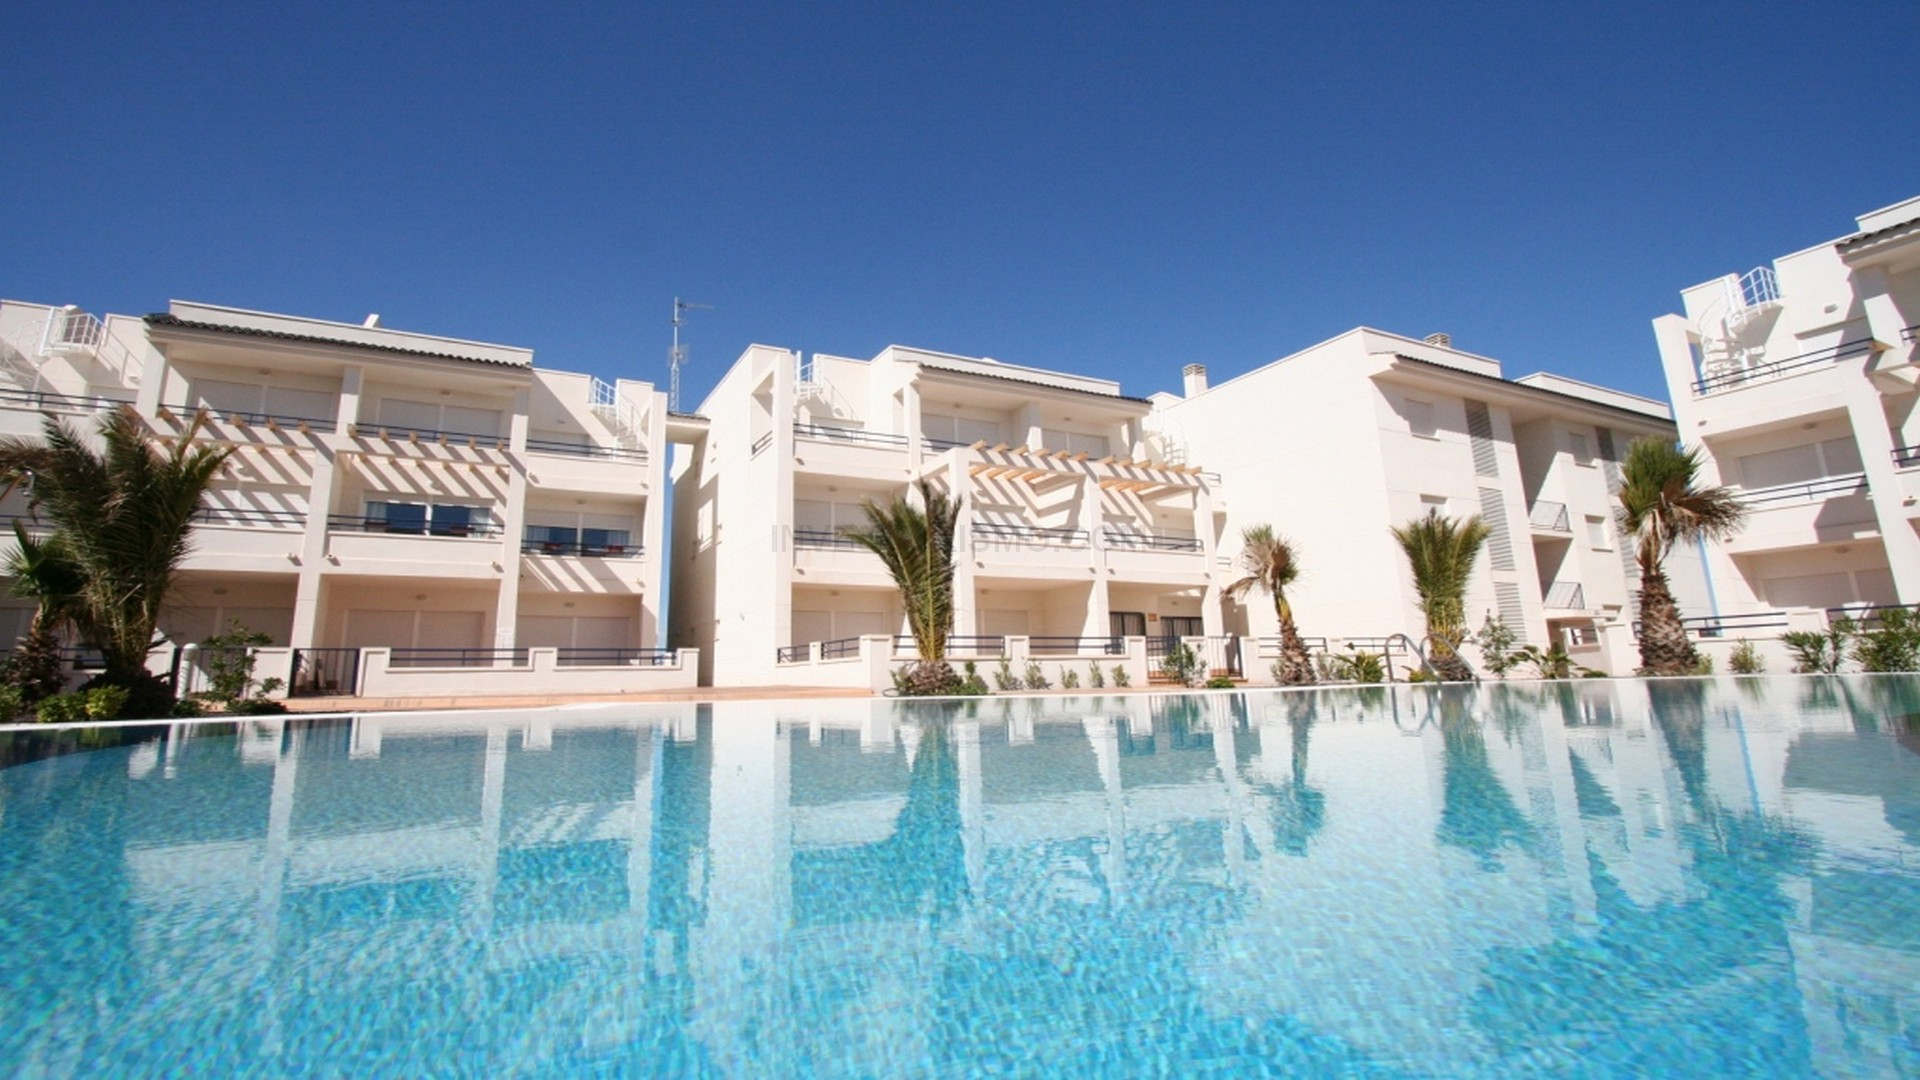 New build apartments 3 bedrooms in Torrevieja